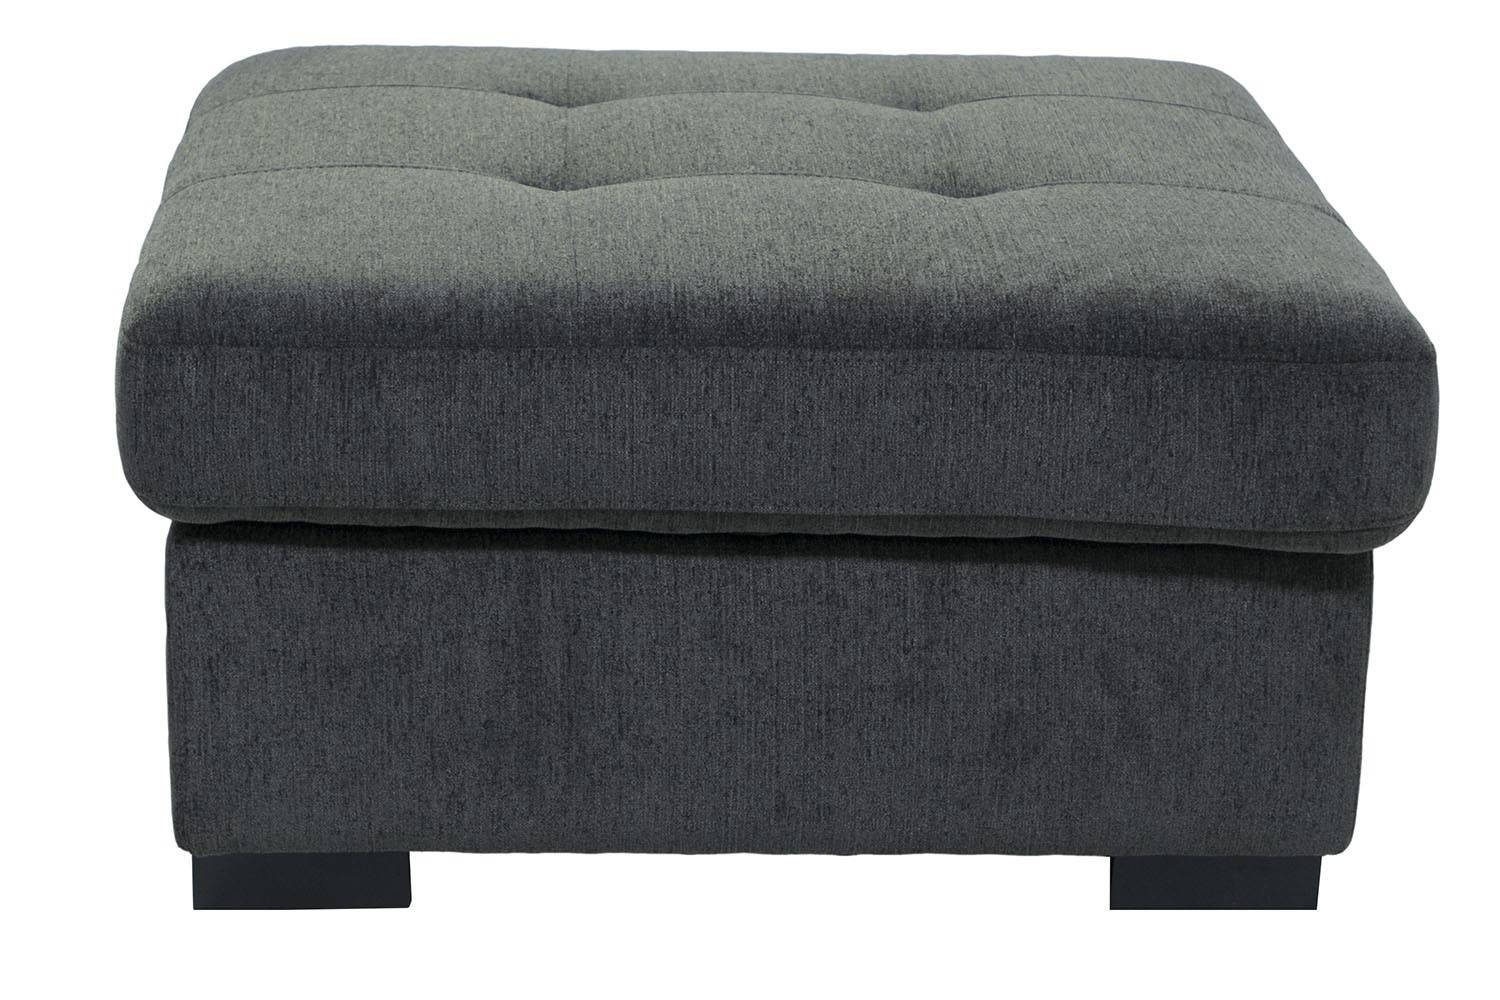 Mor Furniture For Less: The Claire Sectional Living Room | Mor inside Media Room Sectional Sofas (Image 17 of 25)